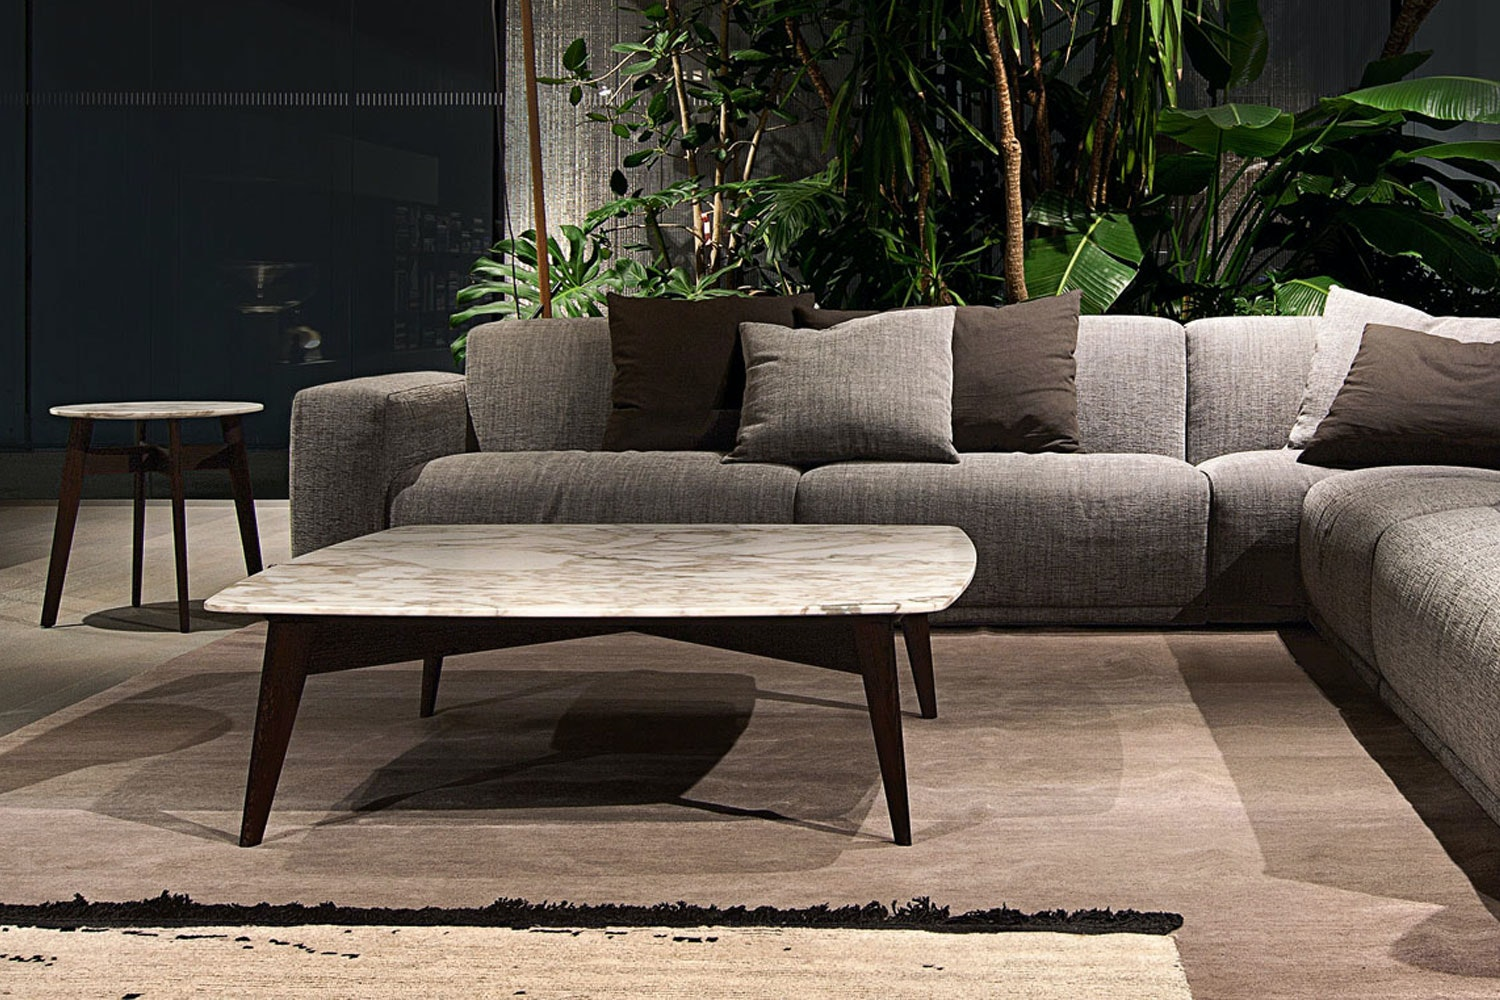 Bigger By Carlo Colombo For Poliform Space Furniture